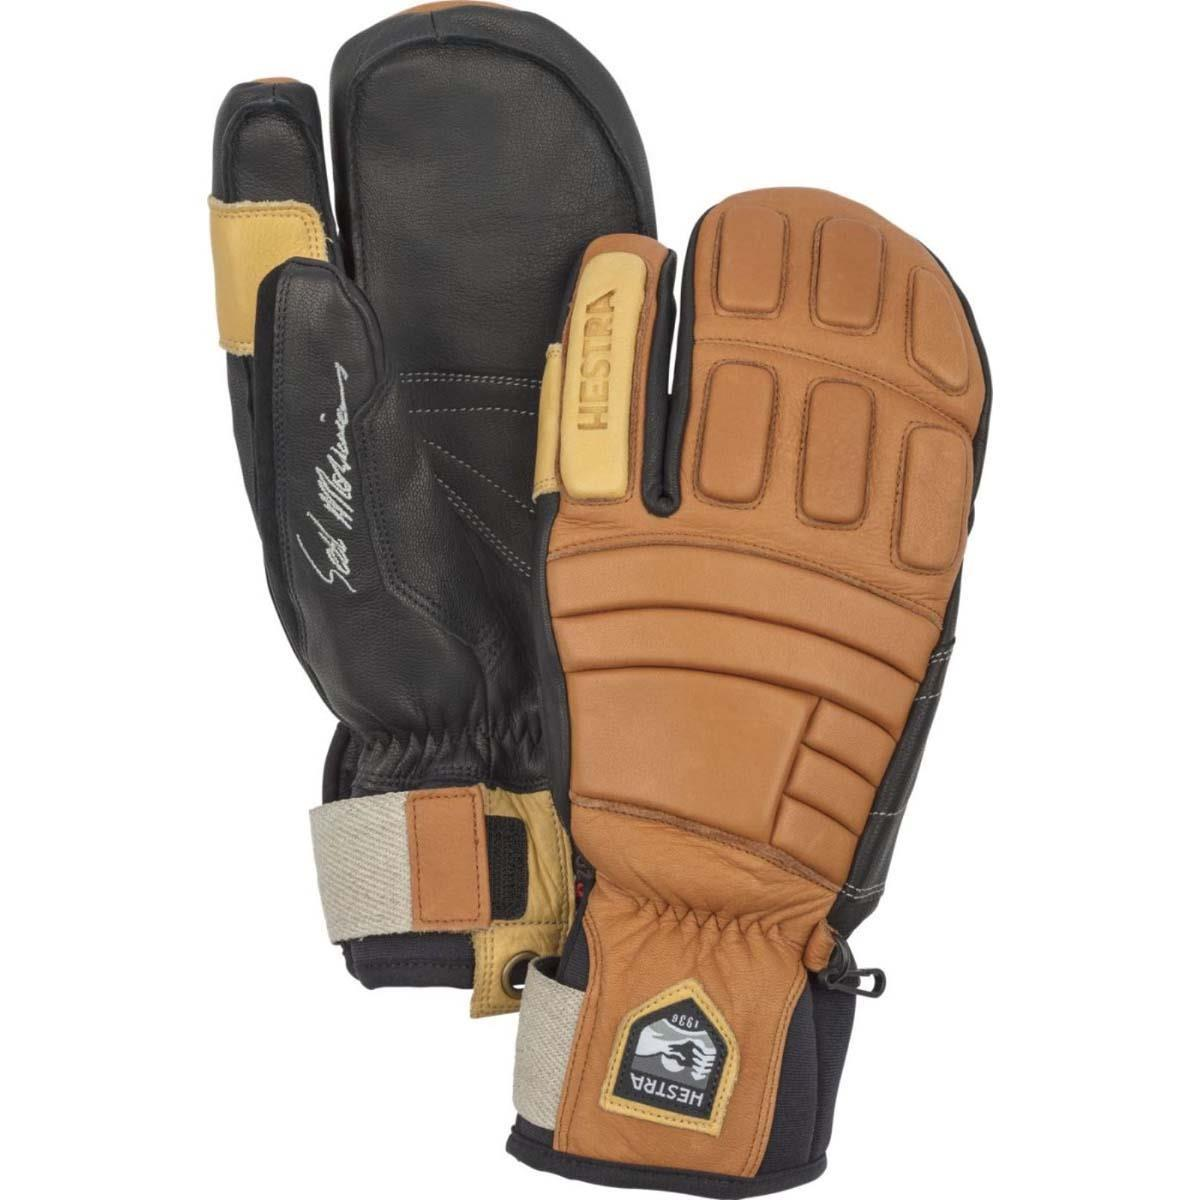 buy best arriving really comfortable Hestra Seth Morrison 3 Finger Pro Glove - Men's | Buckmans.com